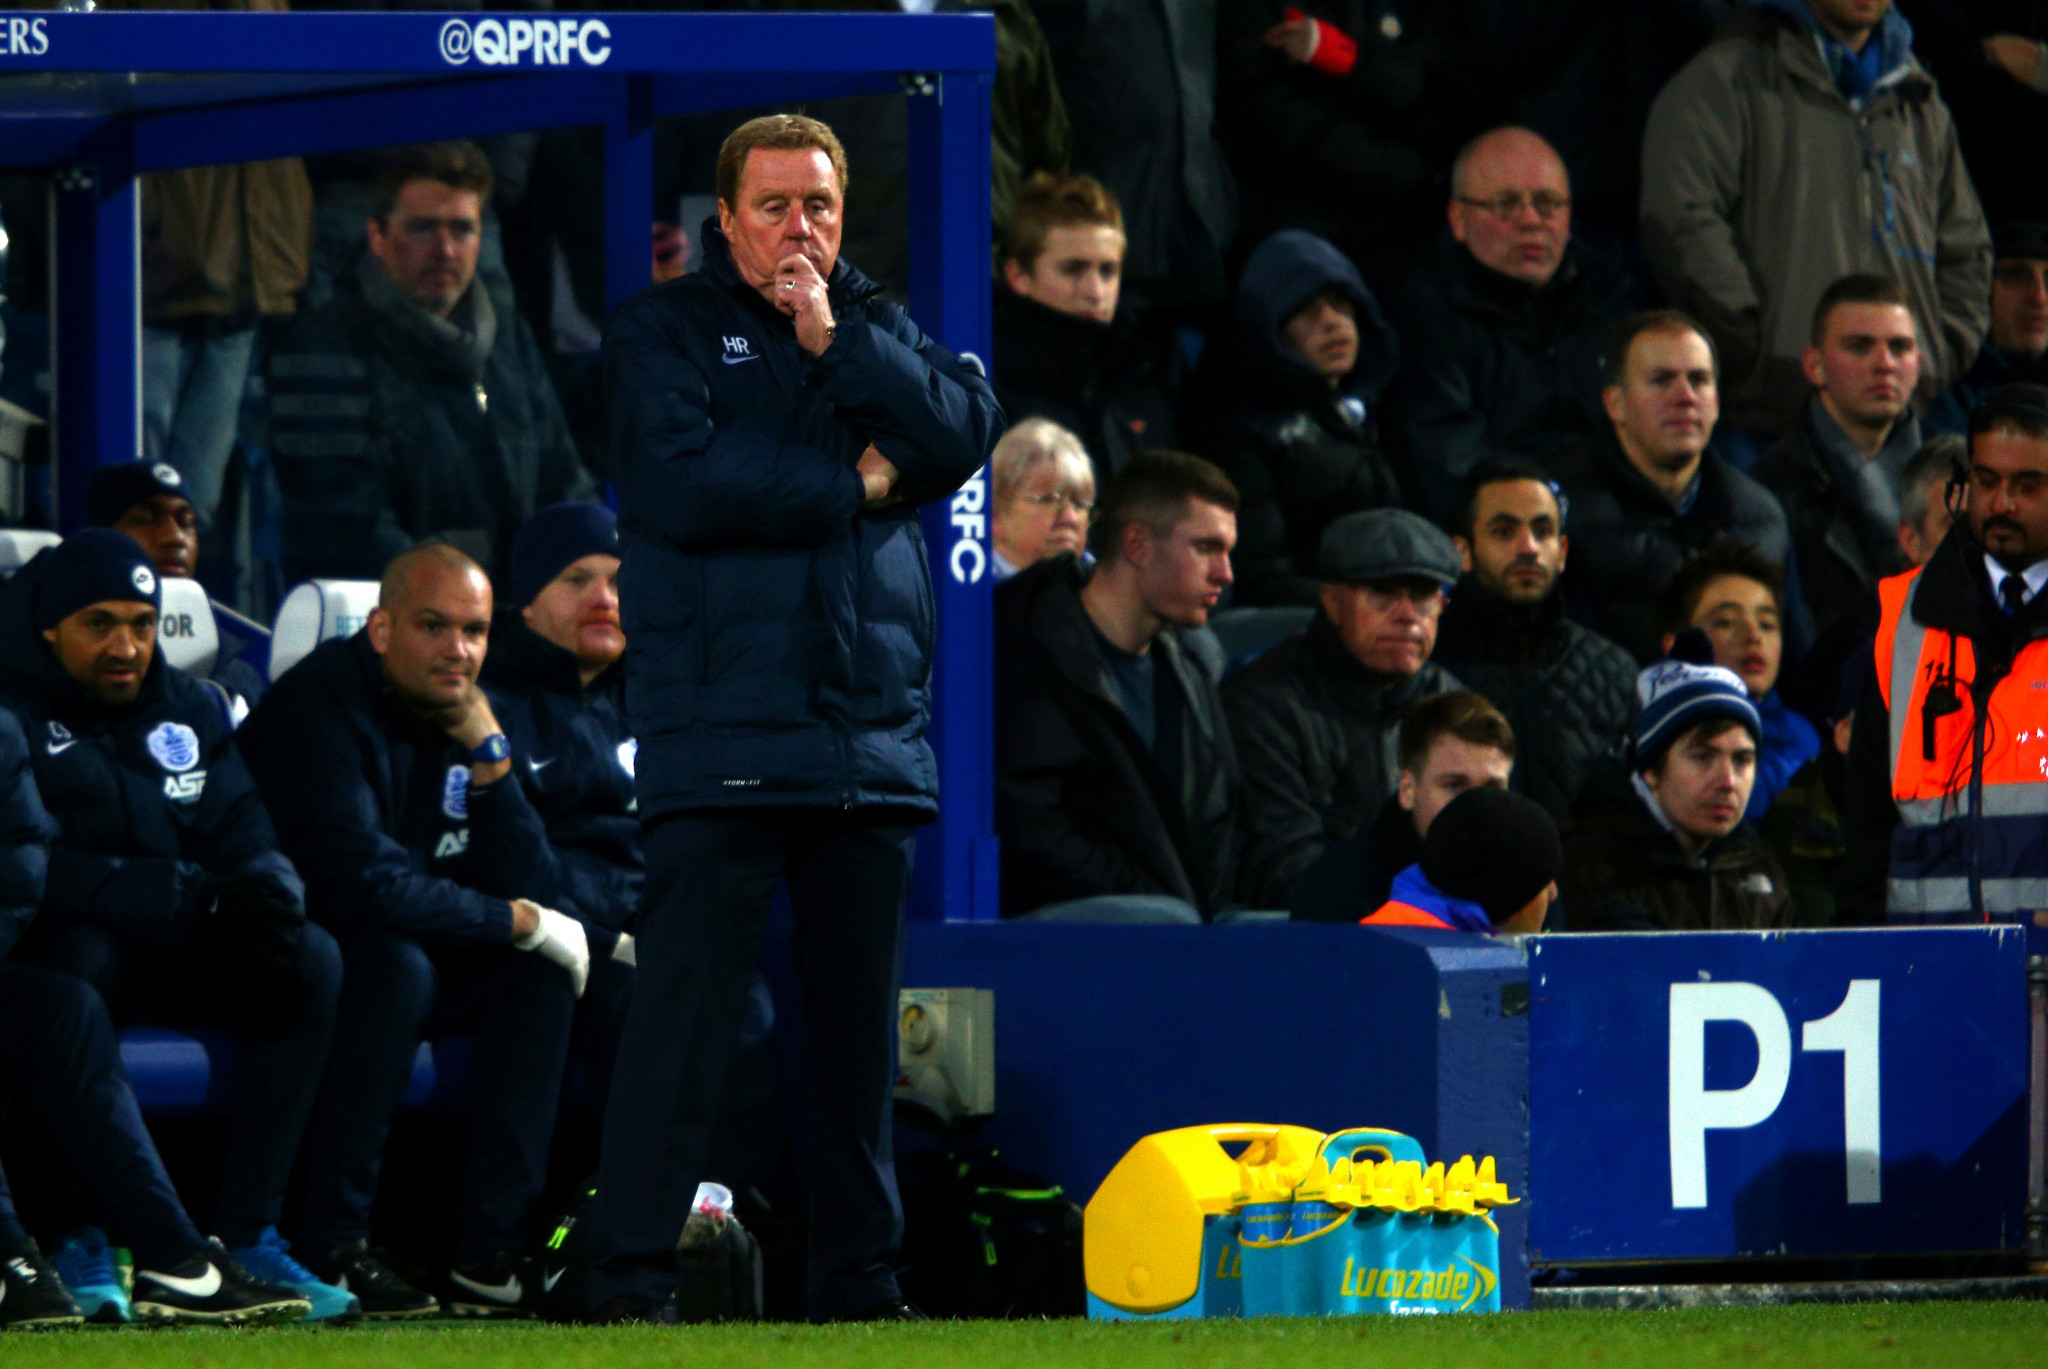 Harry Redknapp is more accustomed to the touchline of a football pitch ©Getty Images